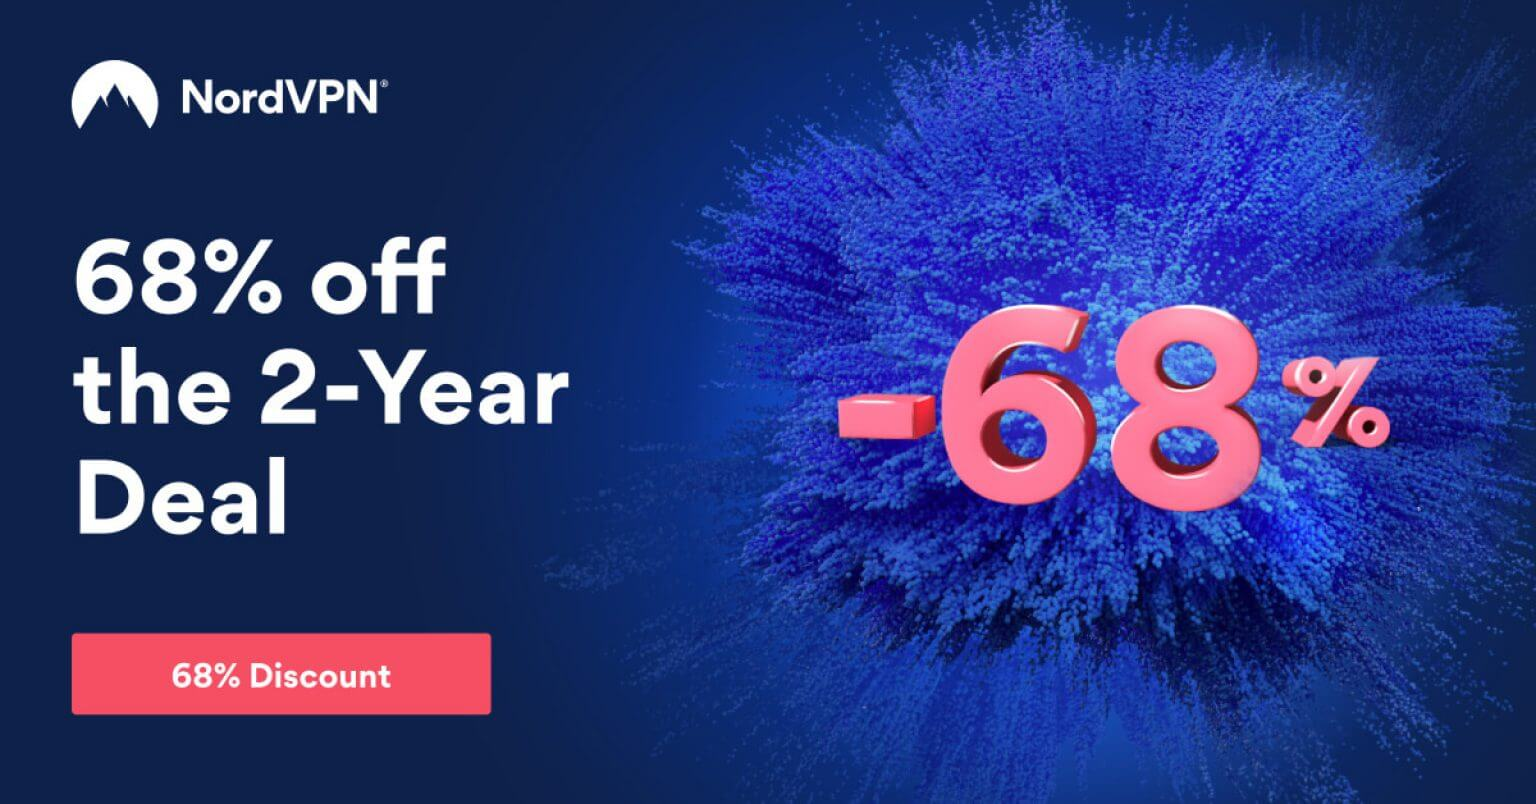 NordVPN Spring Special! 68% off on the 2-year plan + extra service time as a gift